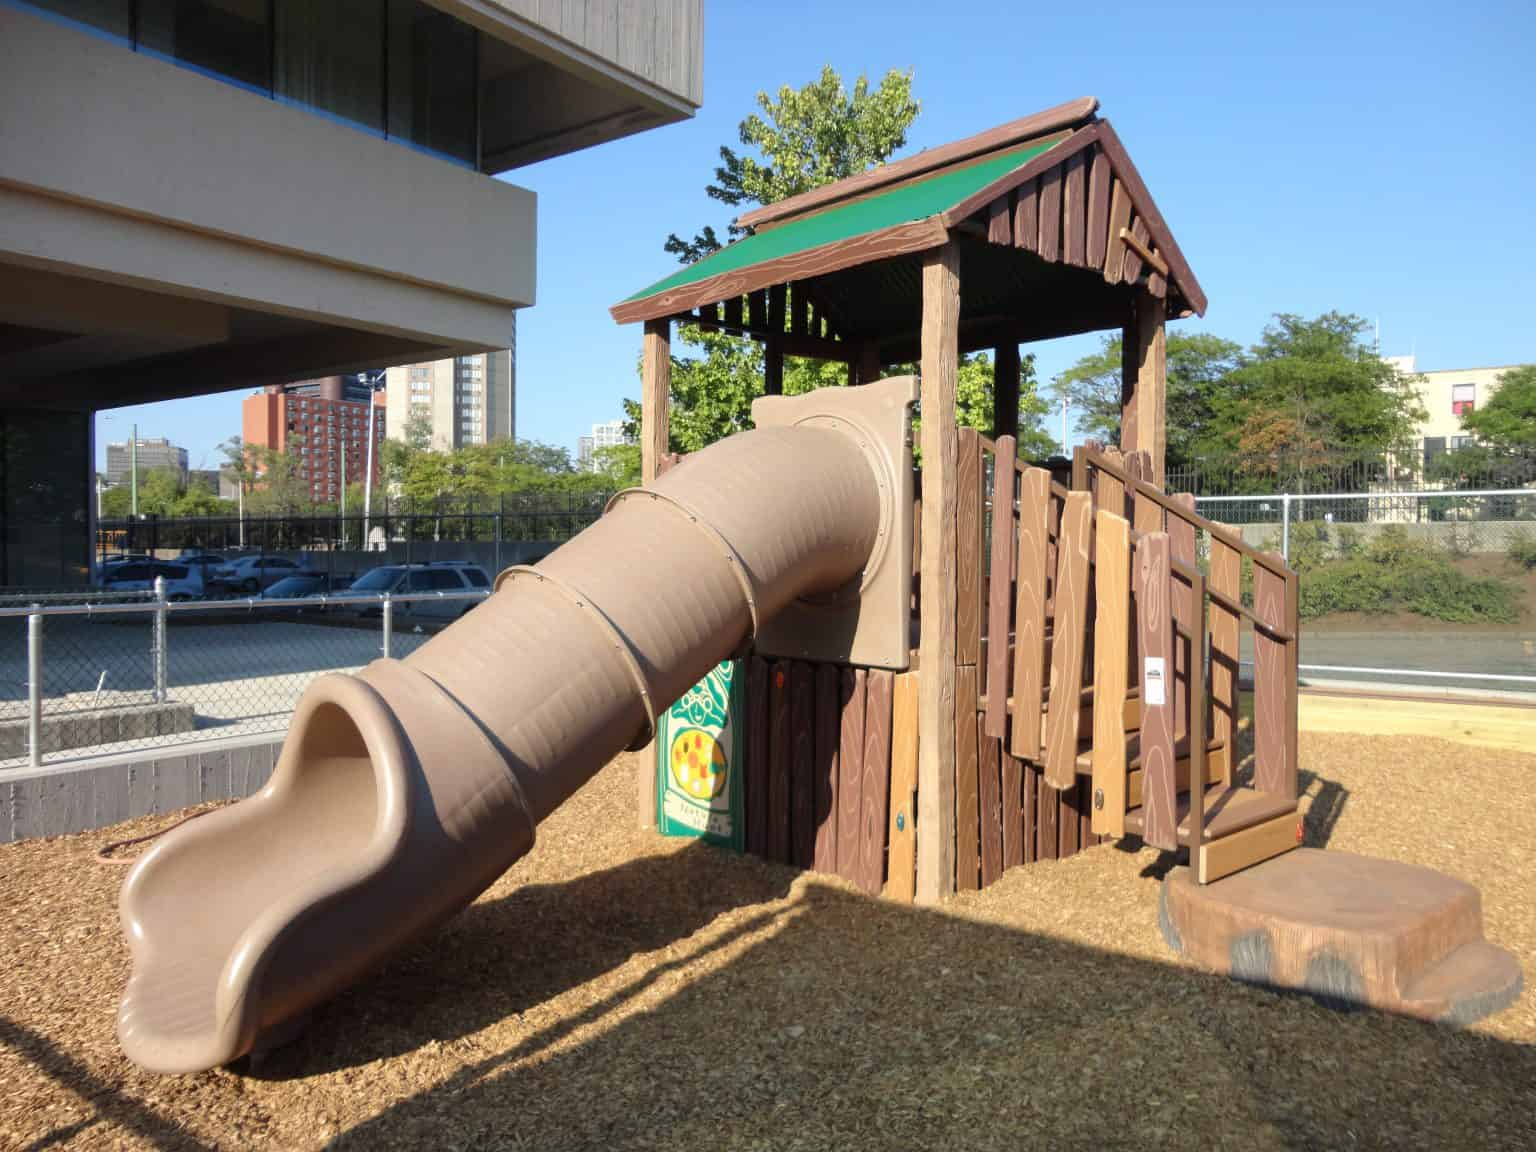 phyllis-bodel-daycare-playground-new-haven-ct_18124106202_o-1536x1152